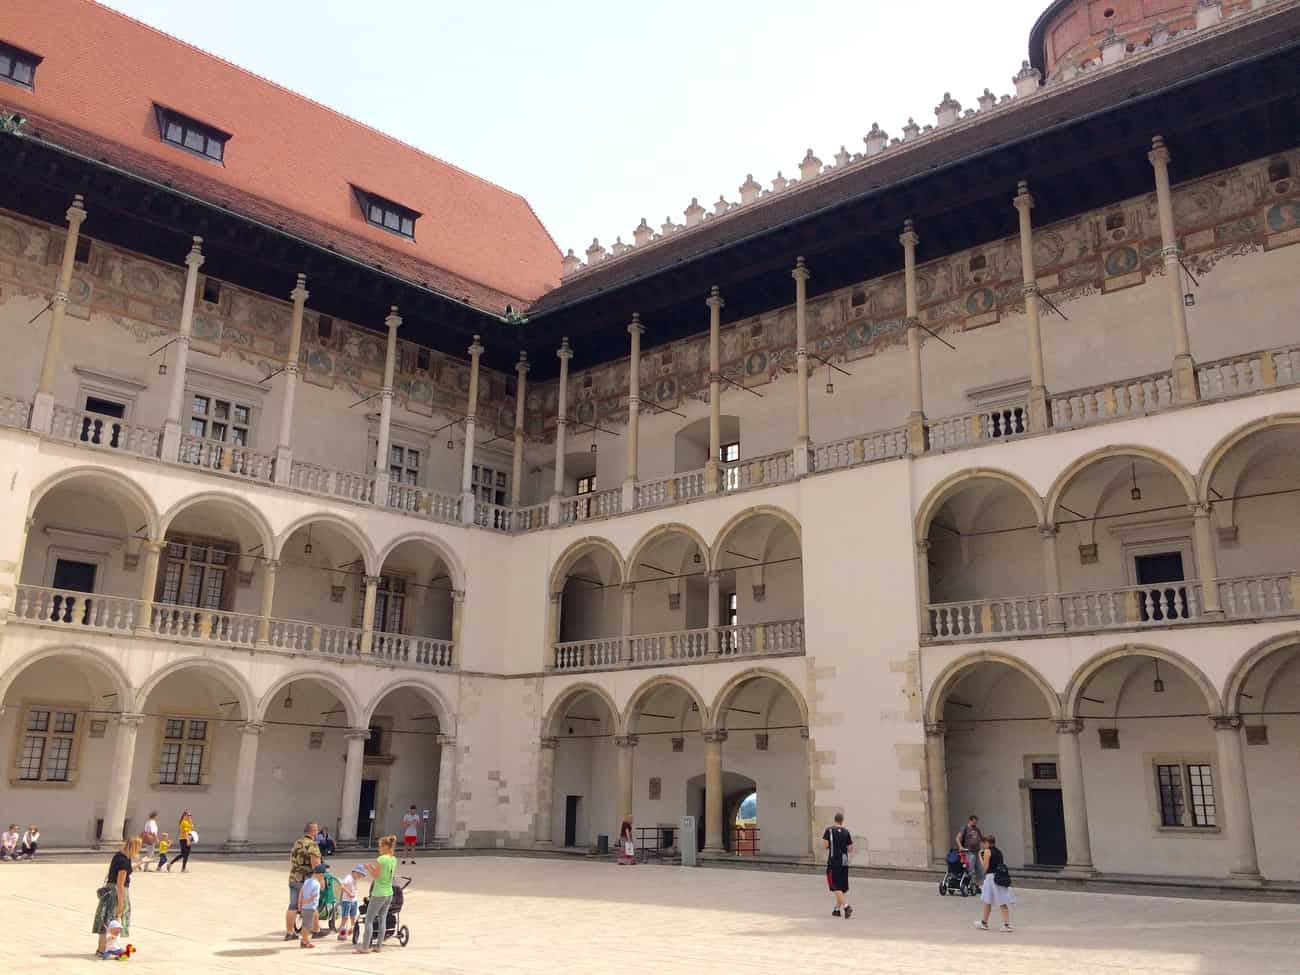 Poland Krakow Wawel Castle Arcaded Courtyard